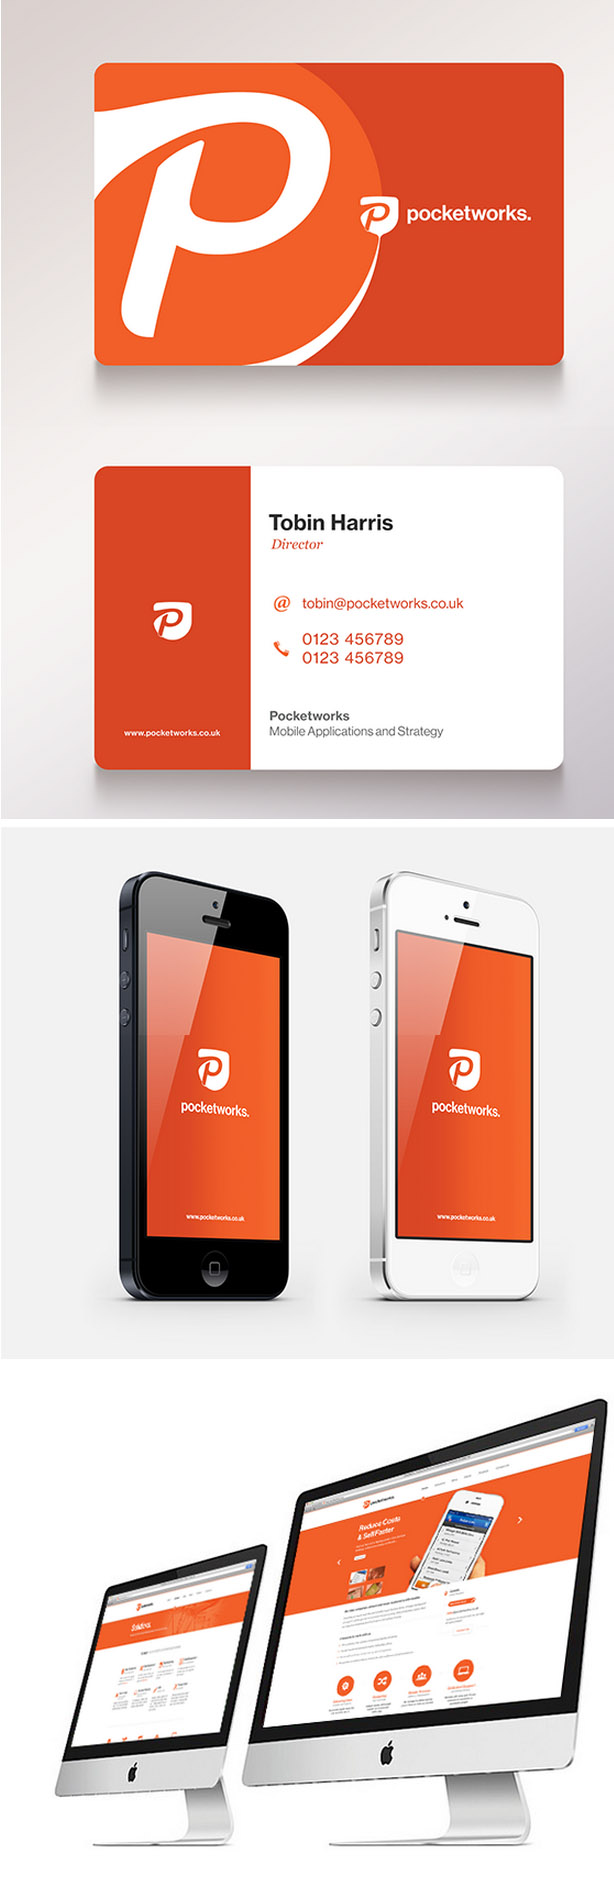 13-pocketworks-branding-identity-design